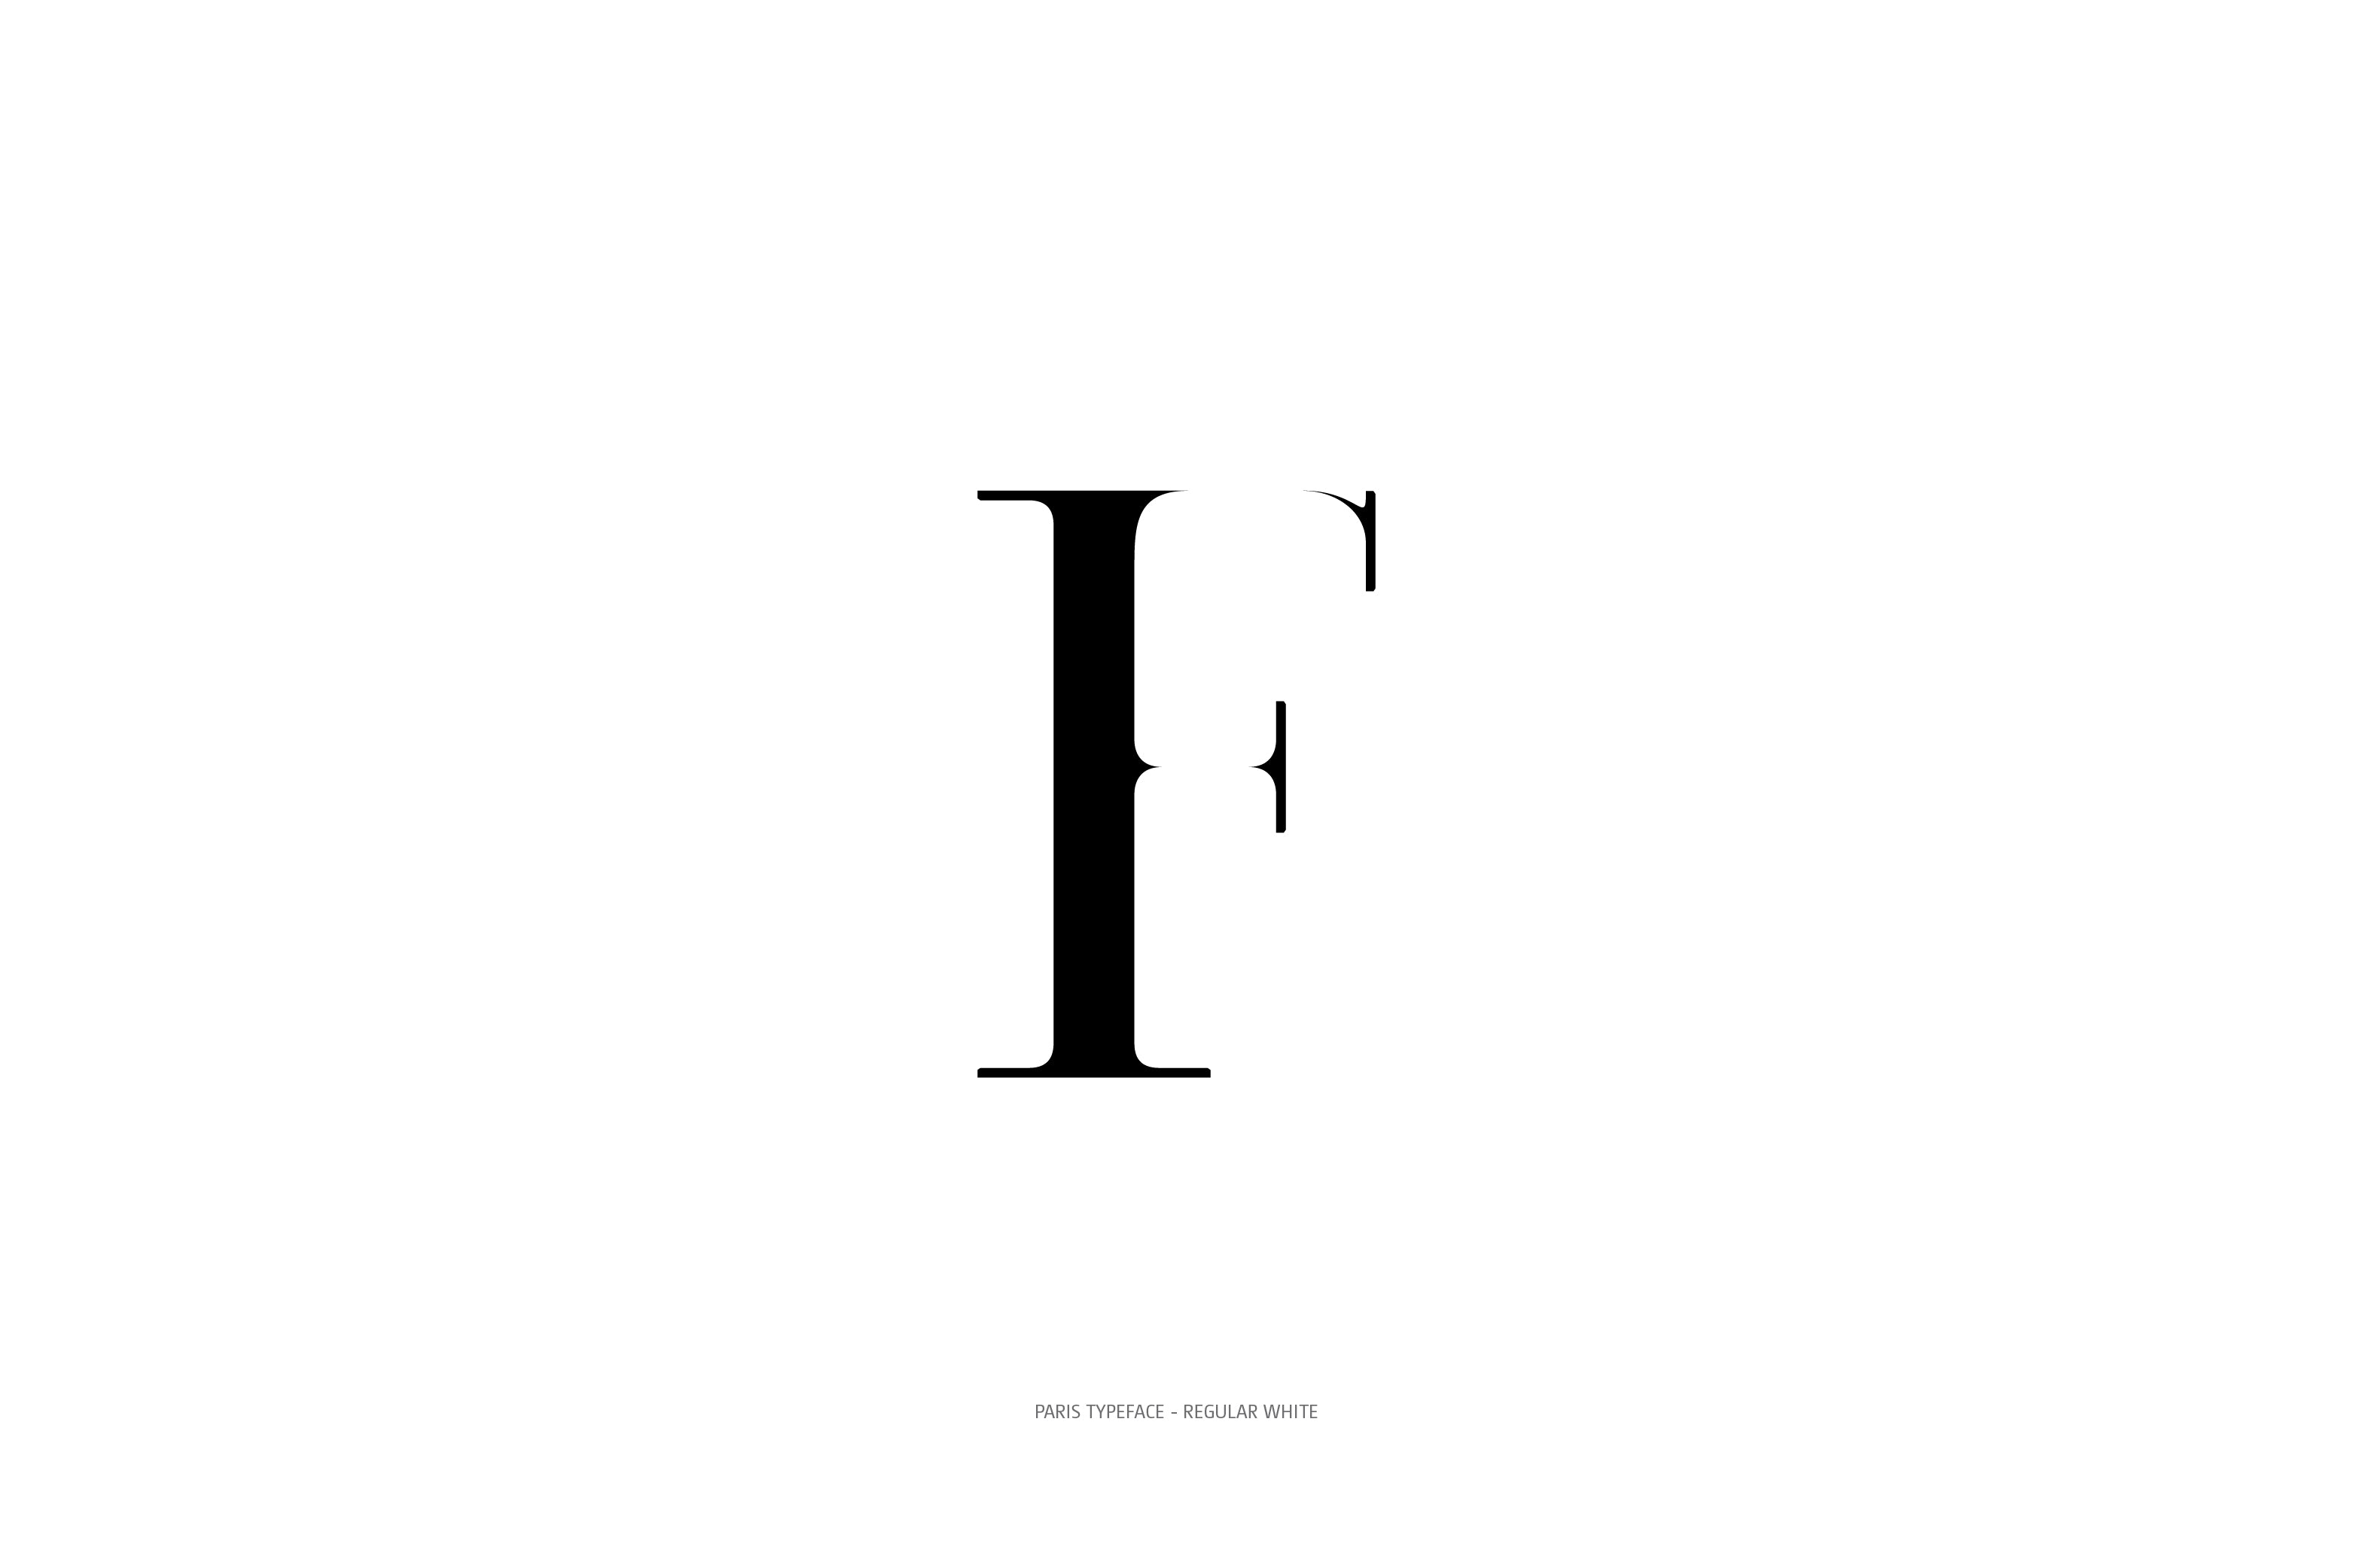 Paris Typeface Regular White F